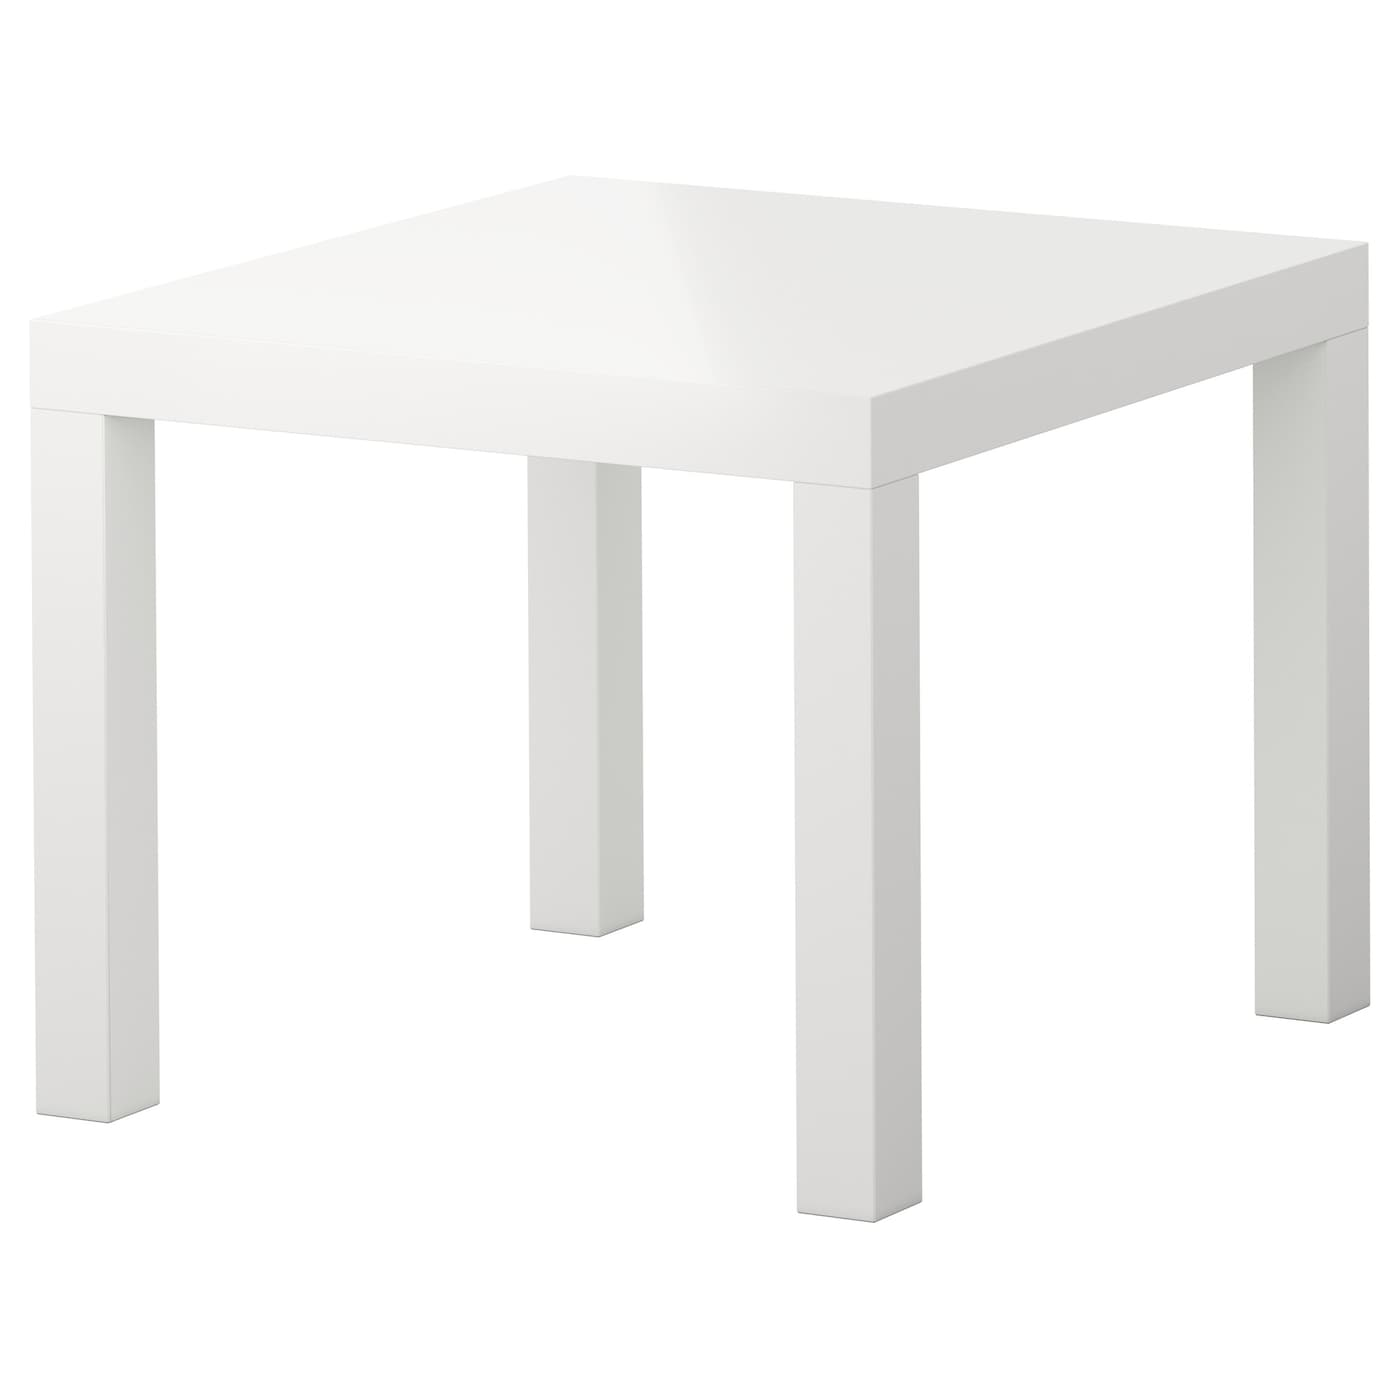 Ikea lack side table the high gloss surfaces reflect light and give a vibrant look